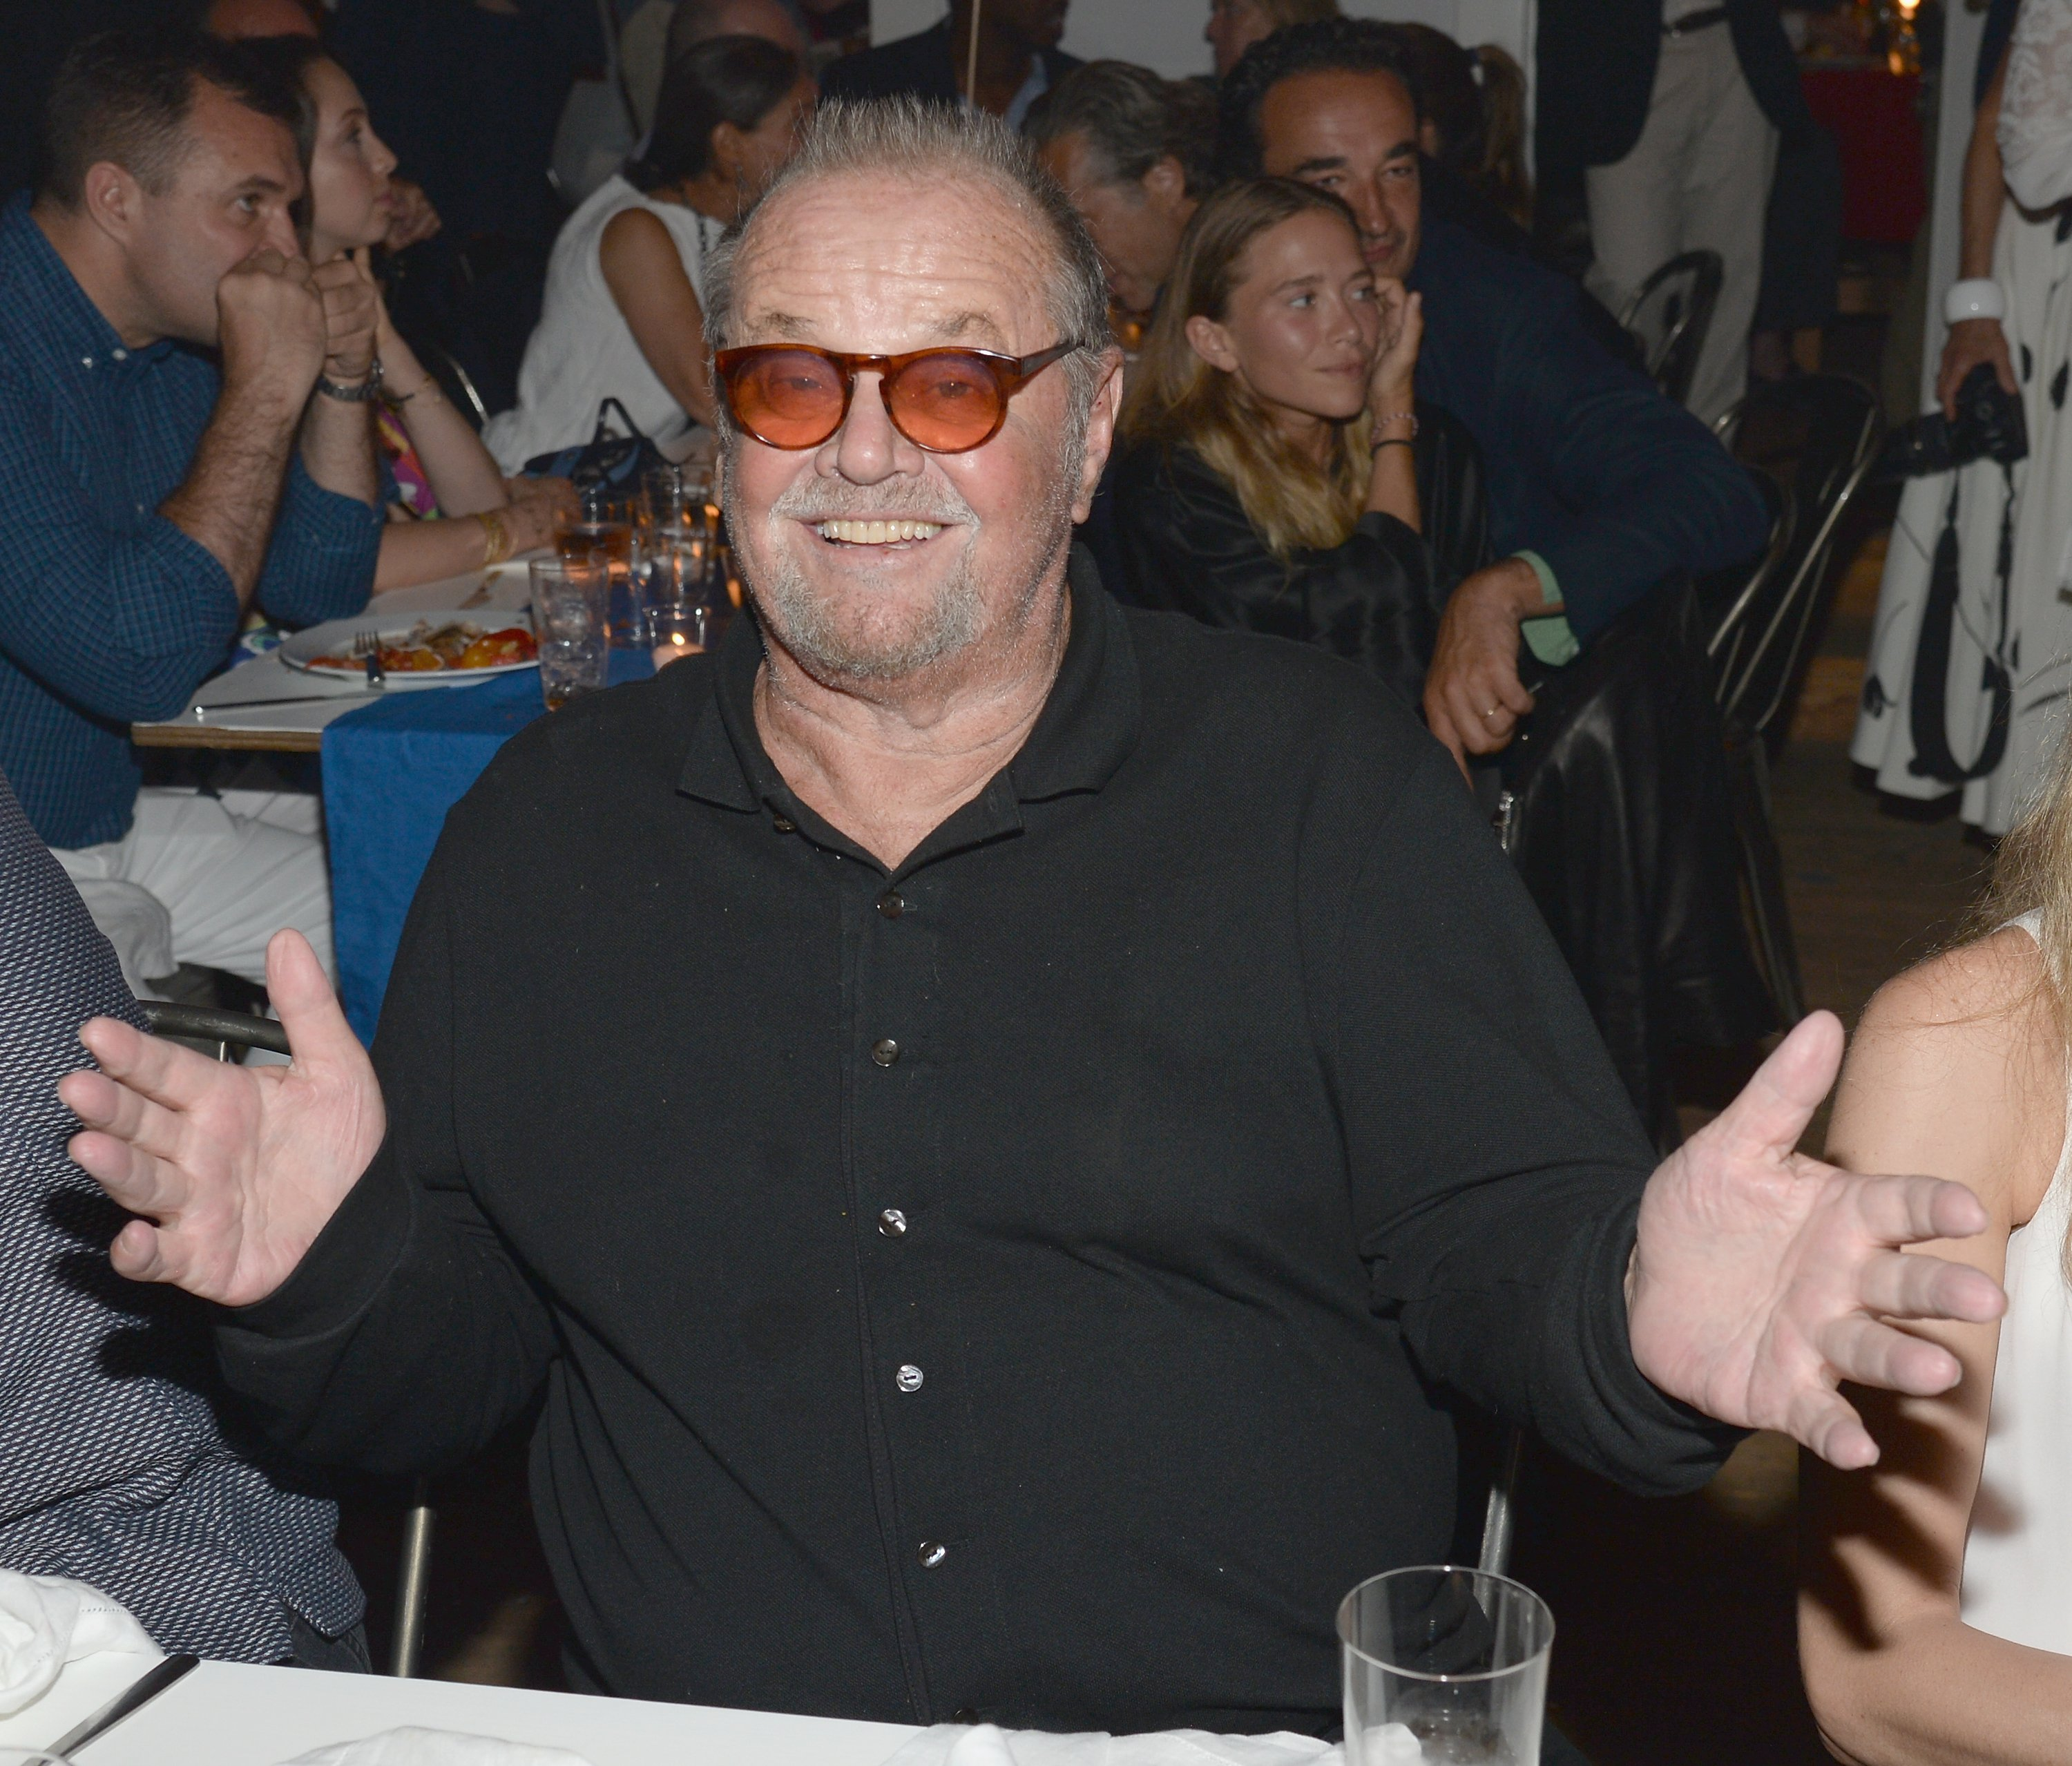 Jack Nicholson à Apollo dans les Hamptons 2015 aux Creeks le 15 août 2015 | Photo : Getty Images